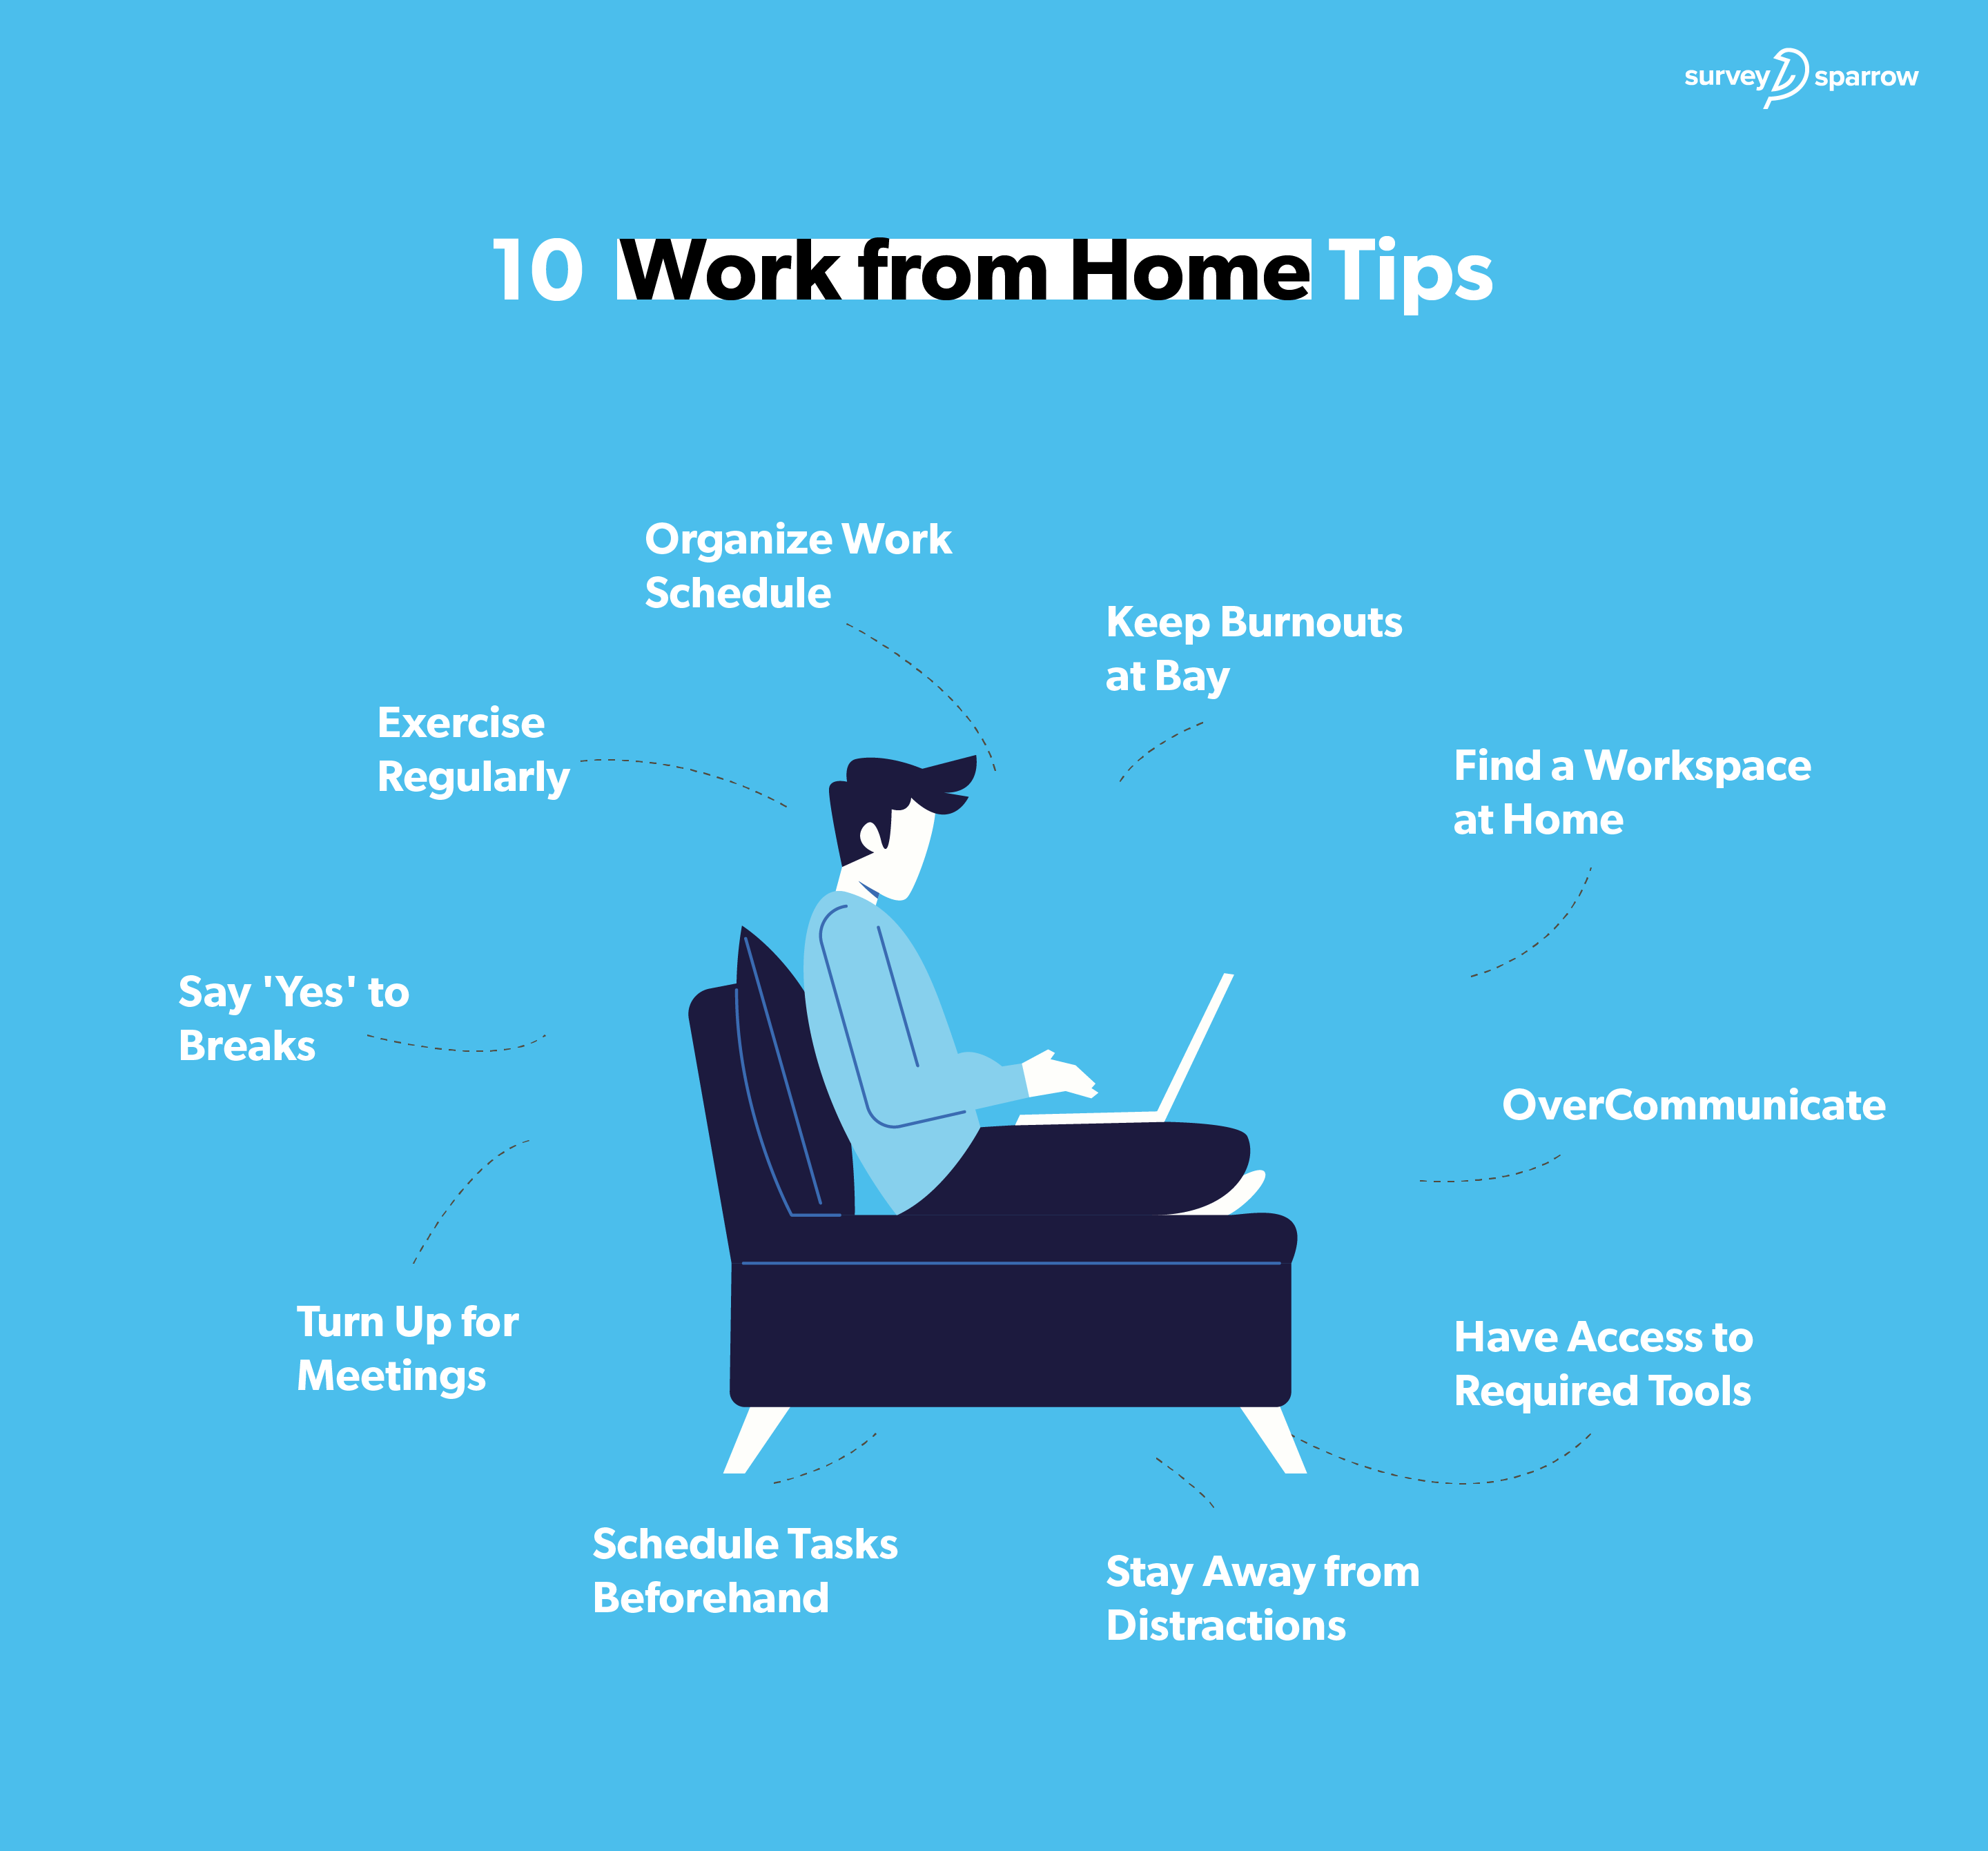 work from home tips.